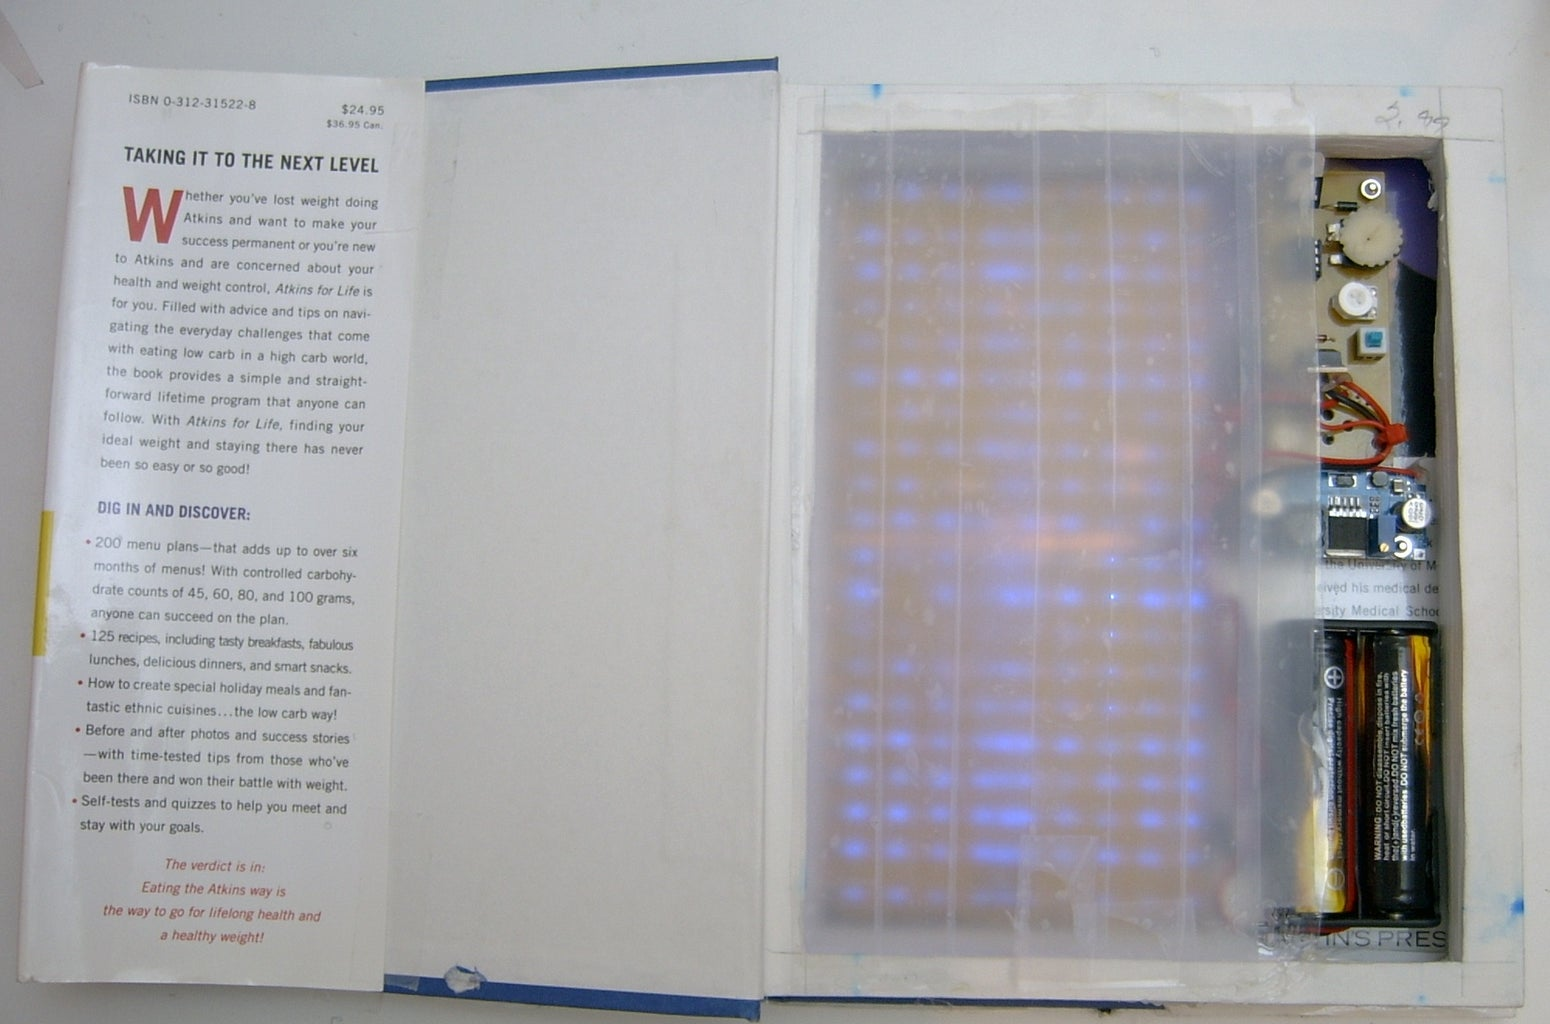 Invisible Tape As a Light Diffuser